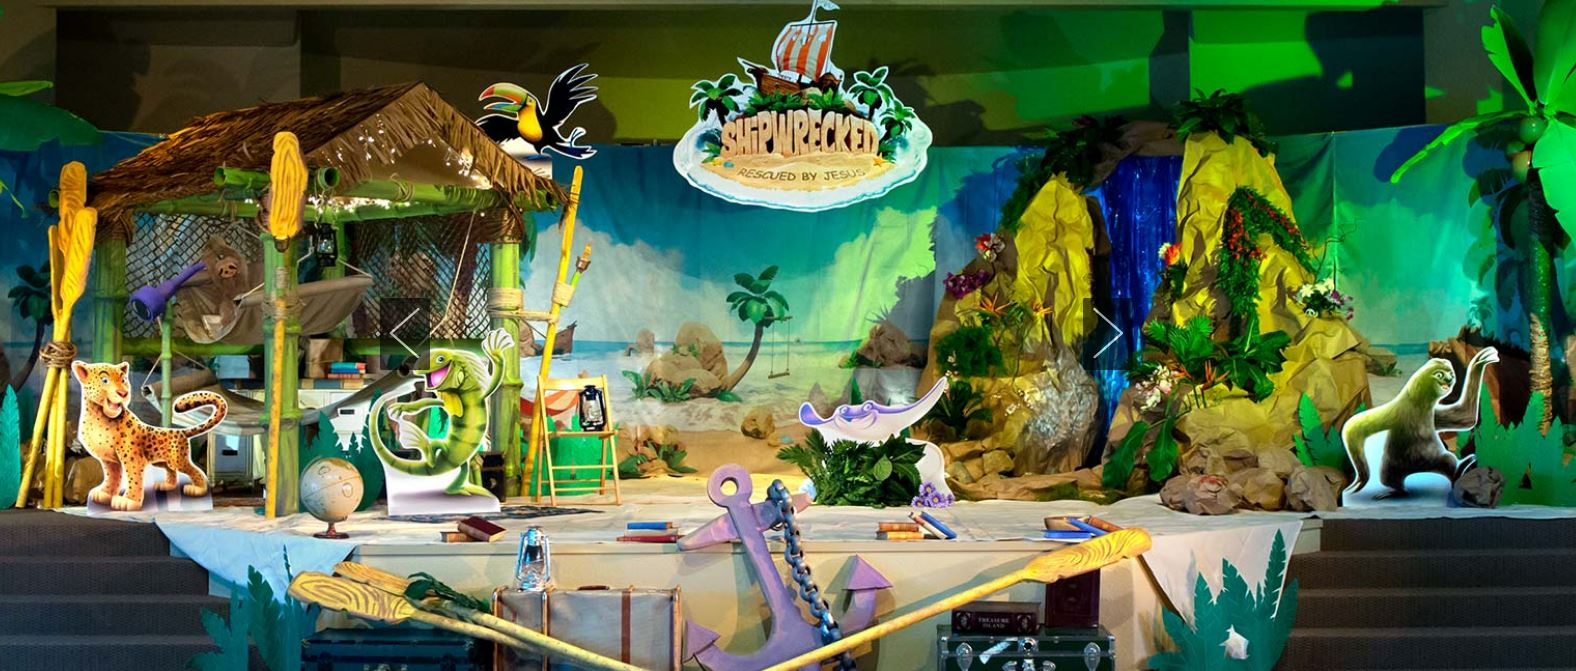 Shipwrecked Vbs 2018 Group Christianbook Com